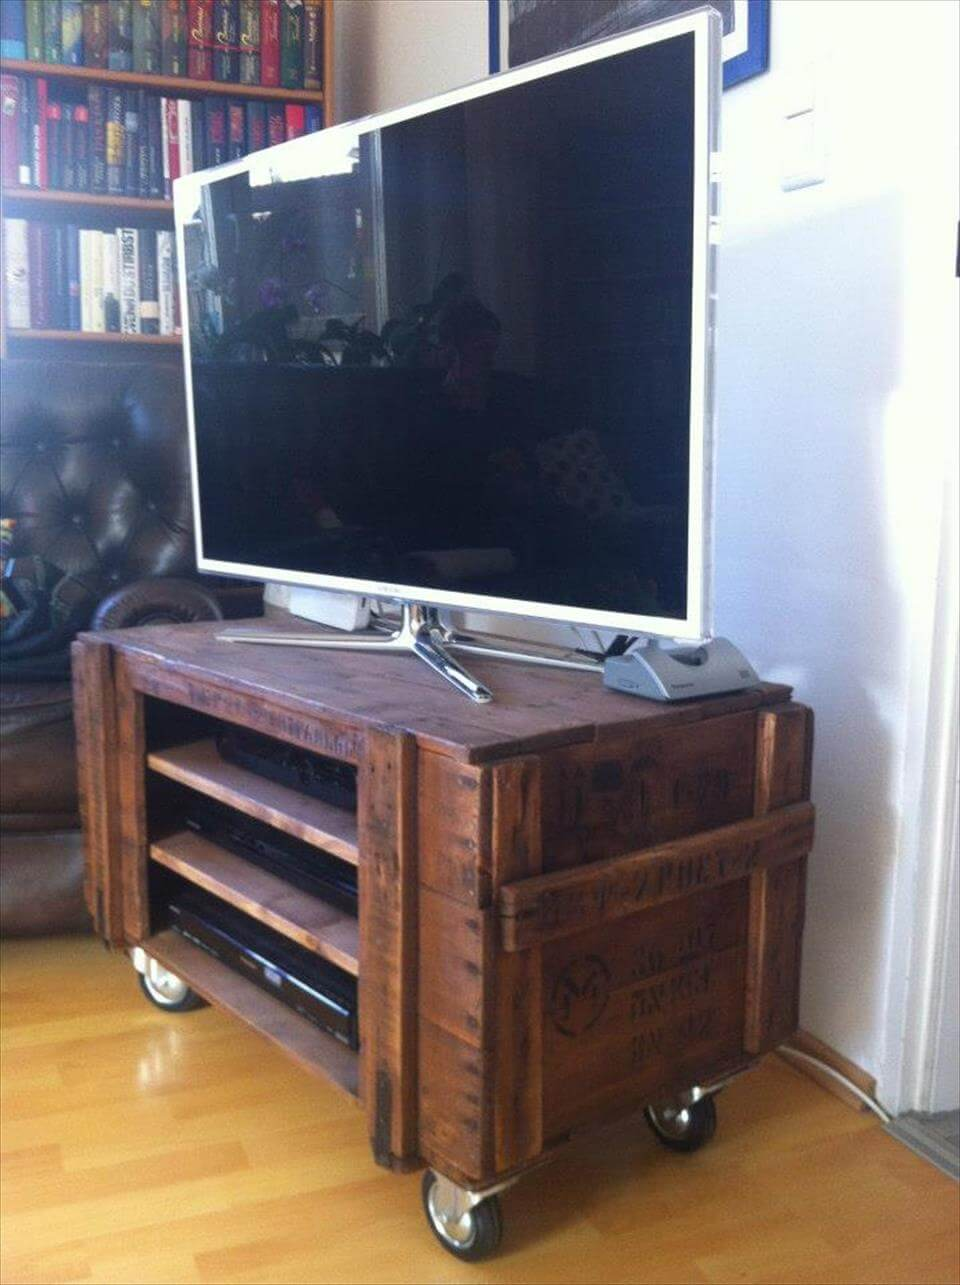 Rustic Pallet TV Stand On Wheels